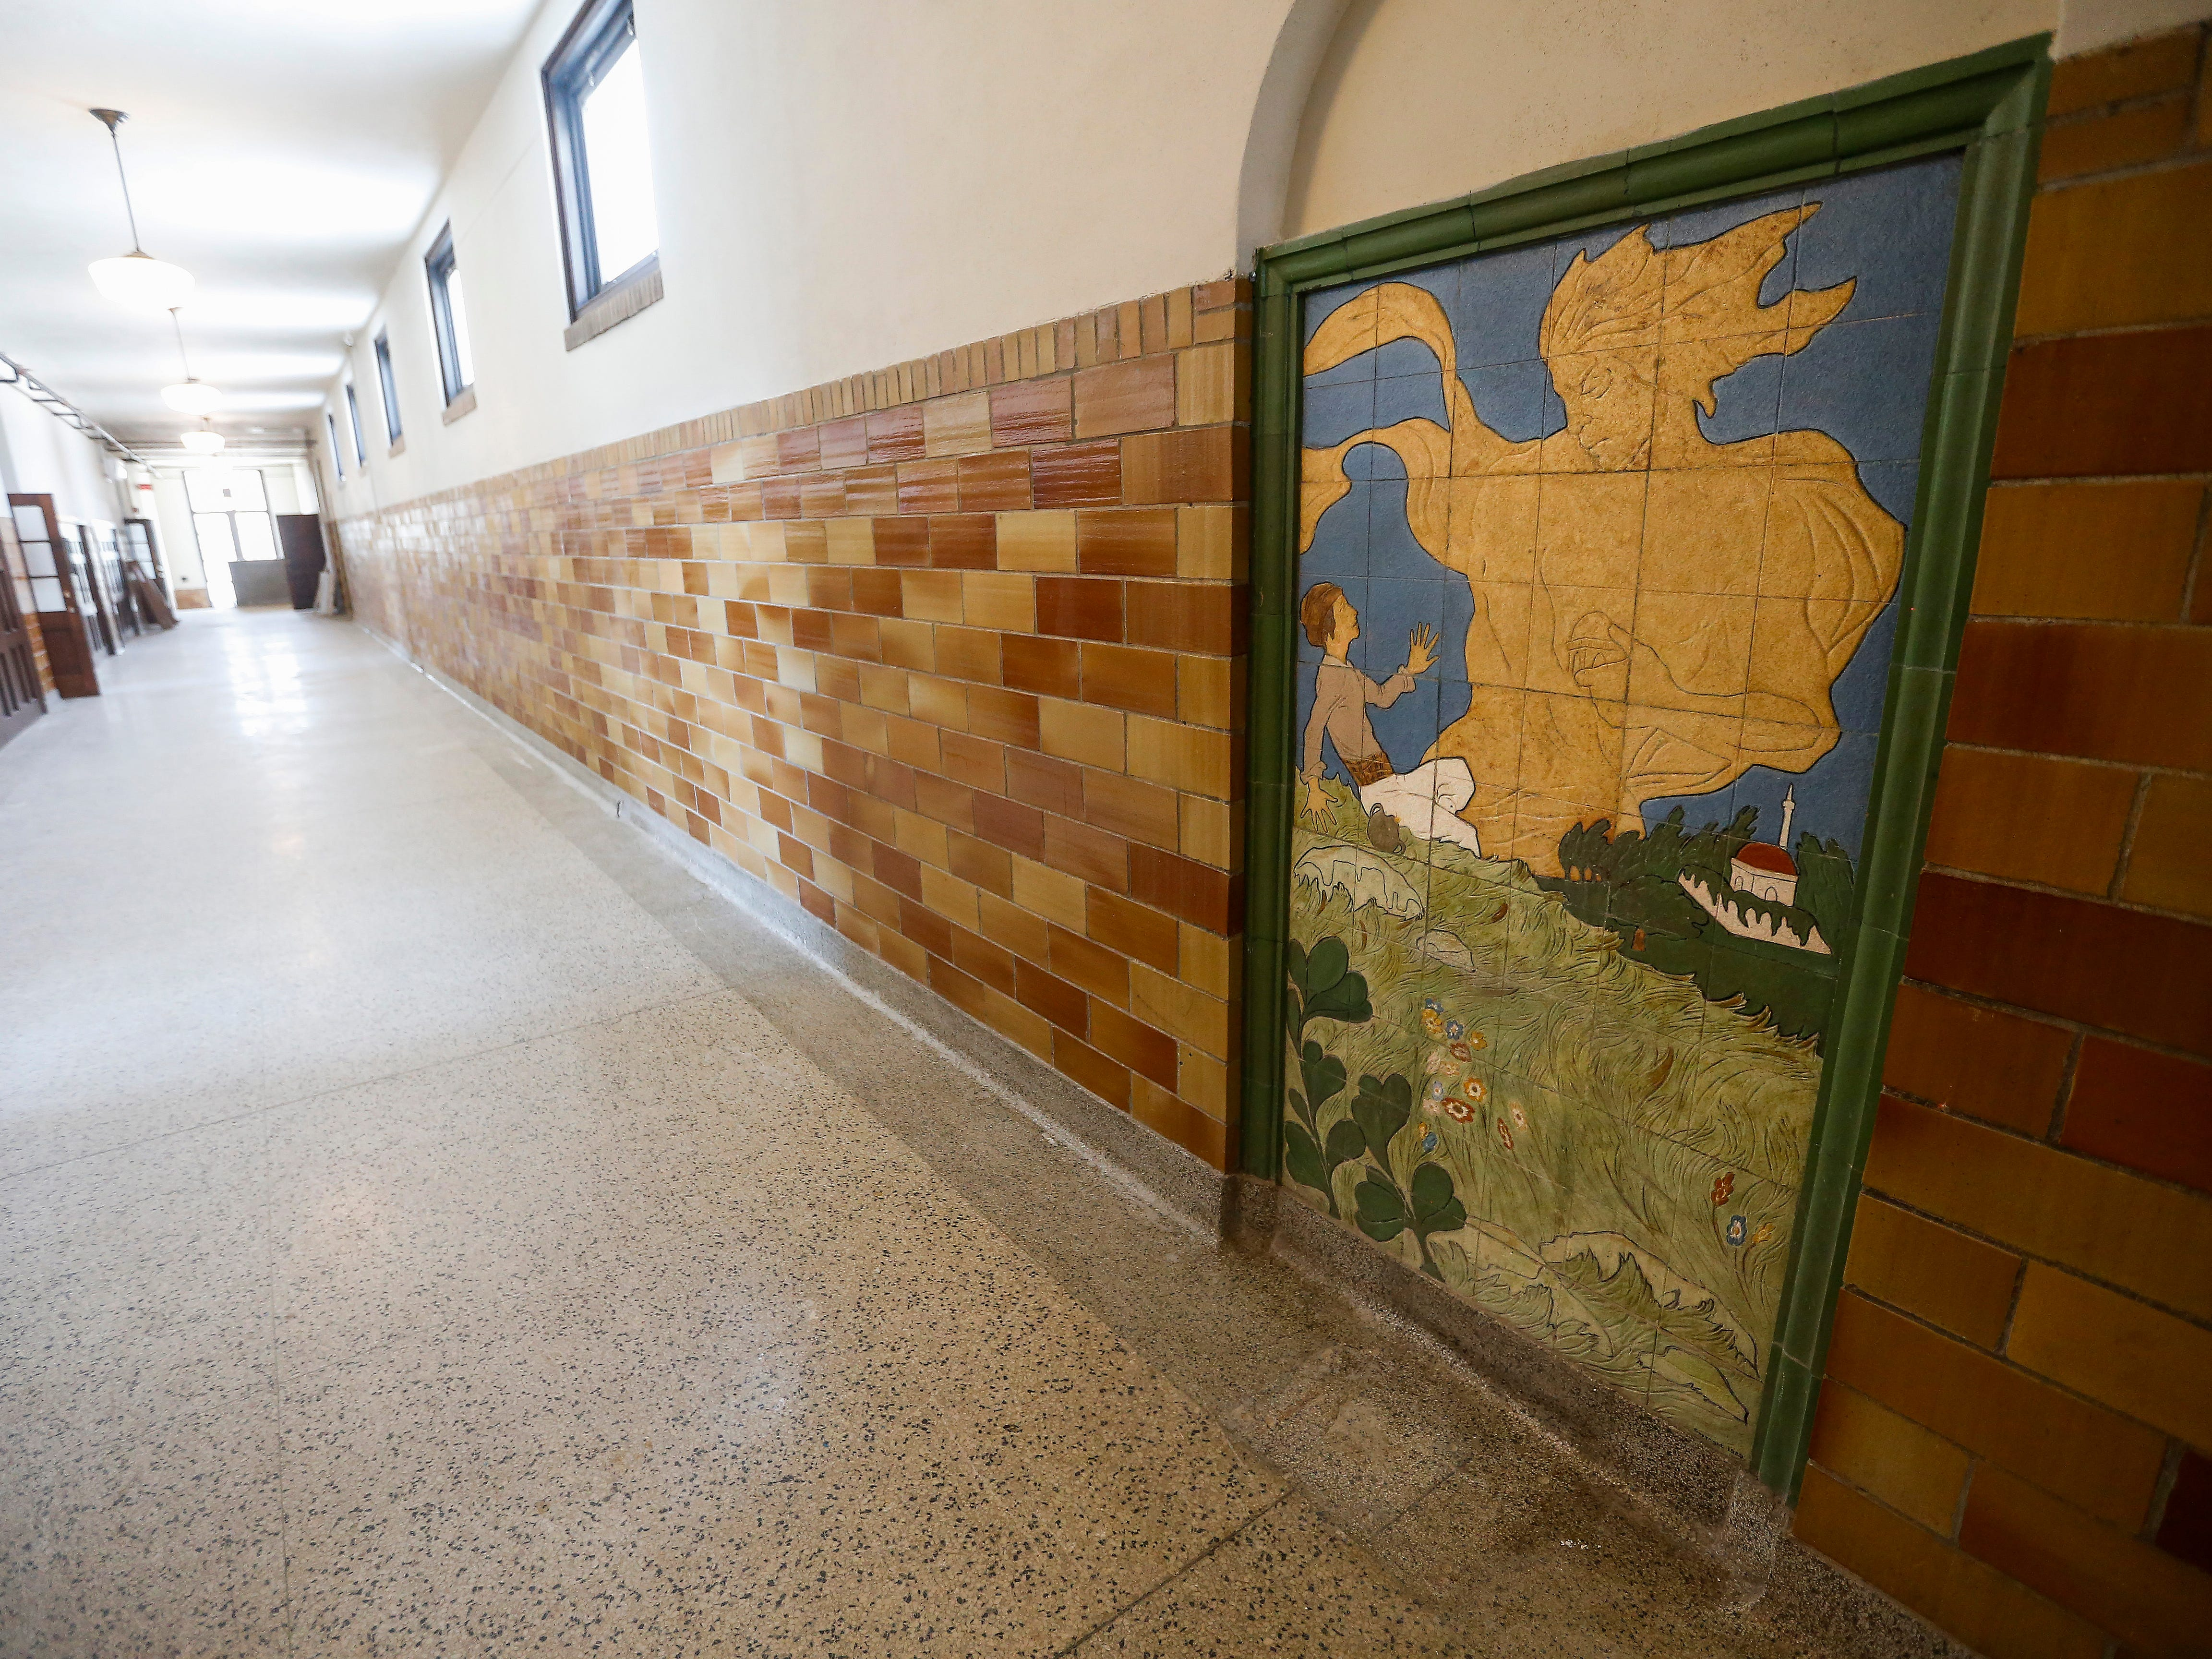 The murals at the Bailey School Lofts, located on Central Street near Campbell Avenue, have been kept in place.